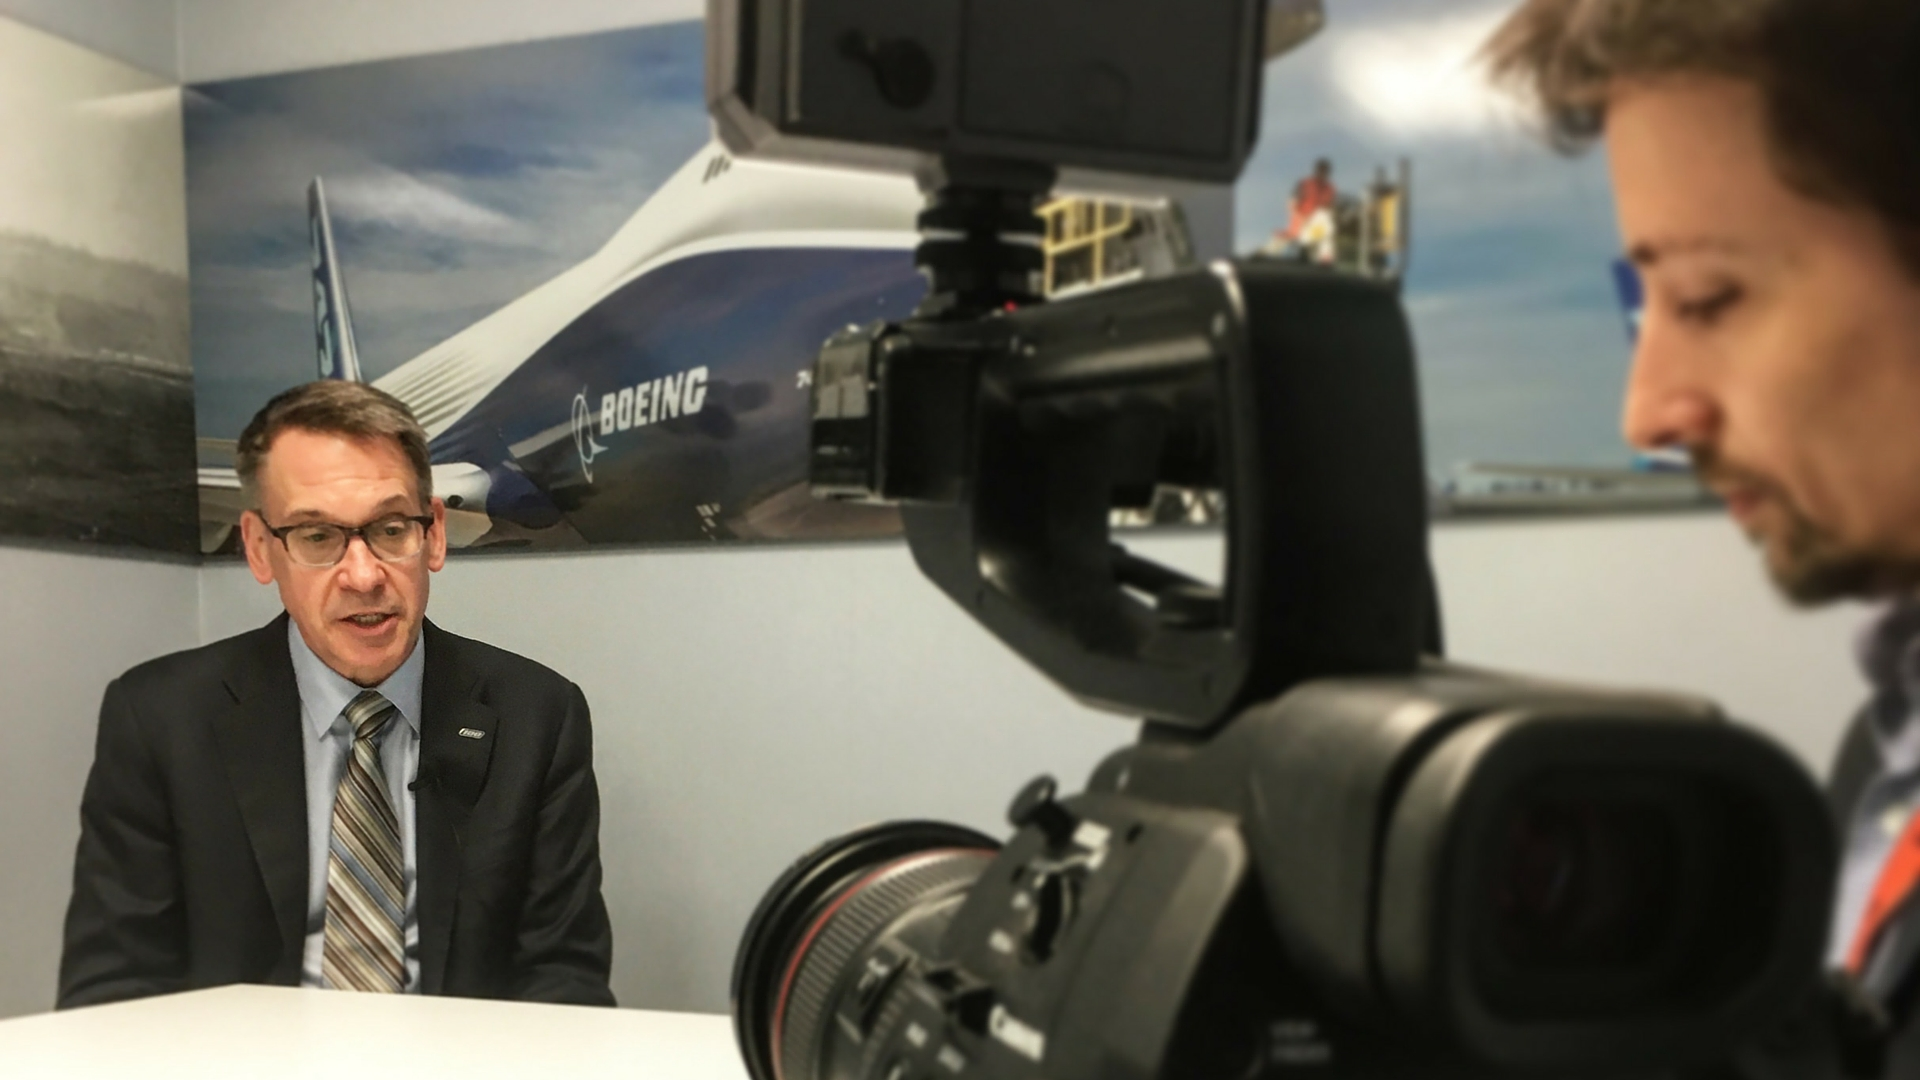 Randy Tinseth speaks to EURACTIV at the 2016 Farnborough airshow